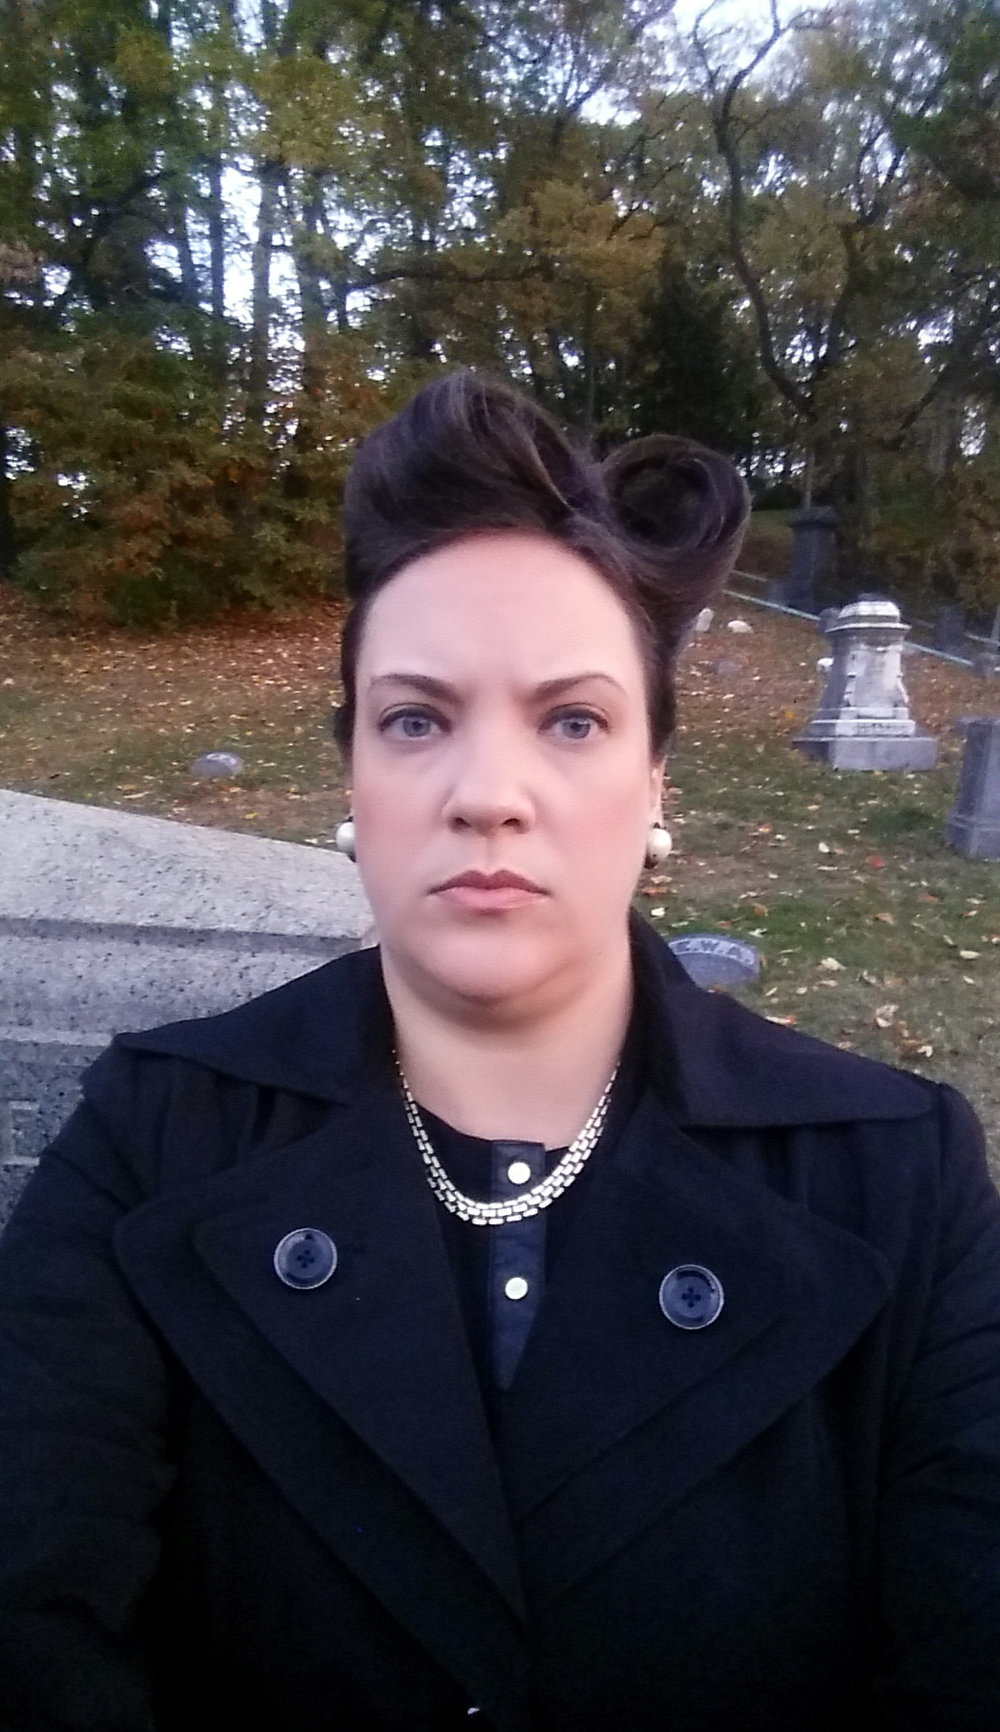 This was how I spent my Halloween, being an extra on the TV show Gotham, where they styled me up and put me out to pasture in a Cemetary! SPOOOOKY!